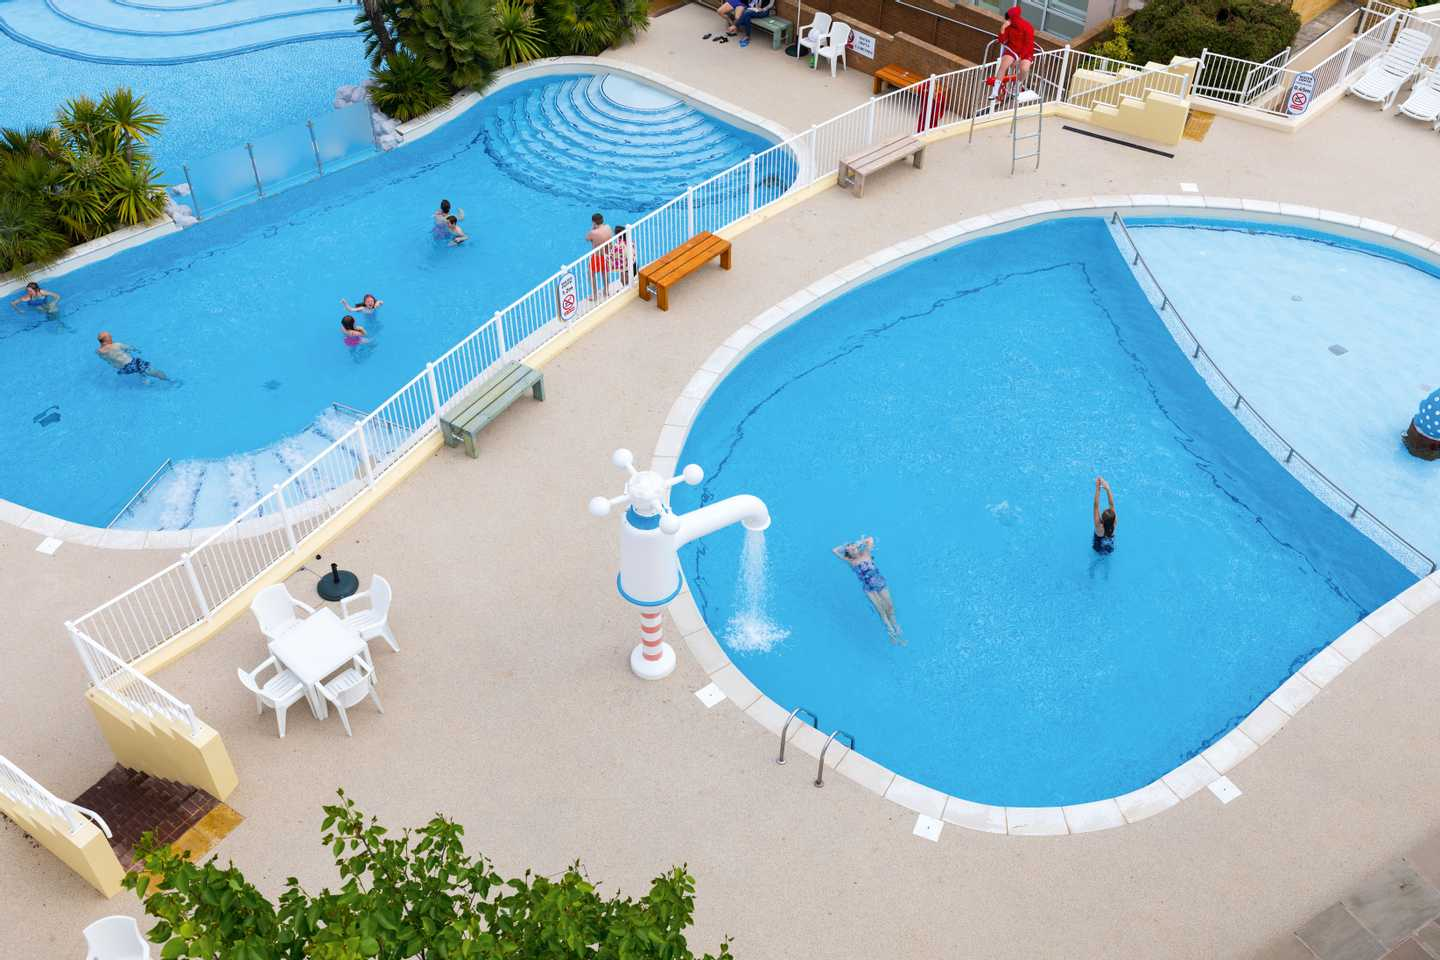 Aerial view of the heated outdoor pool